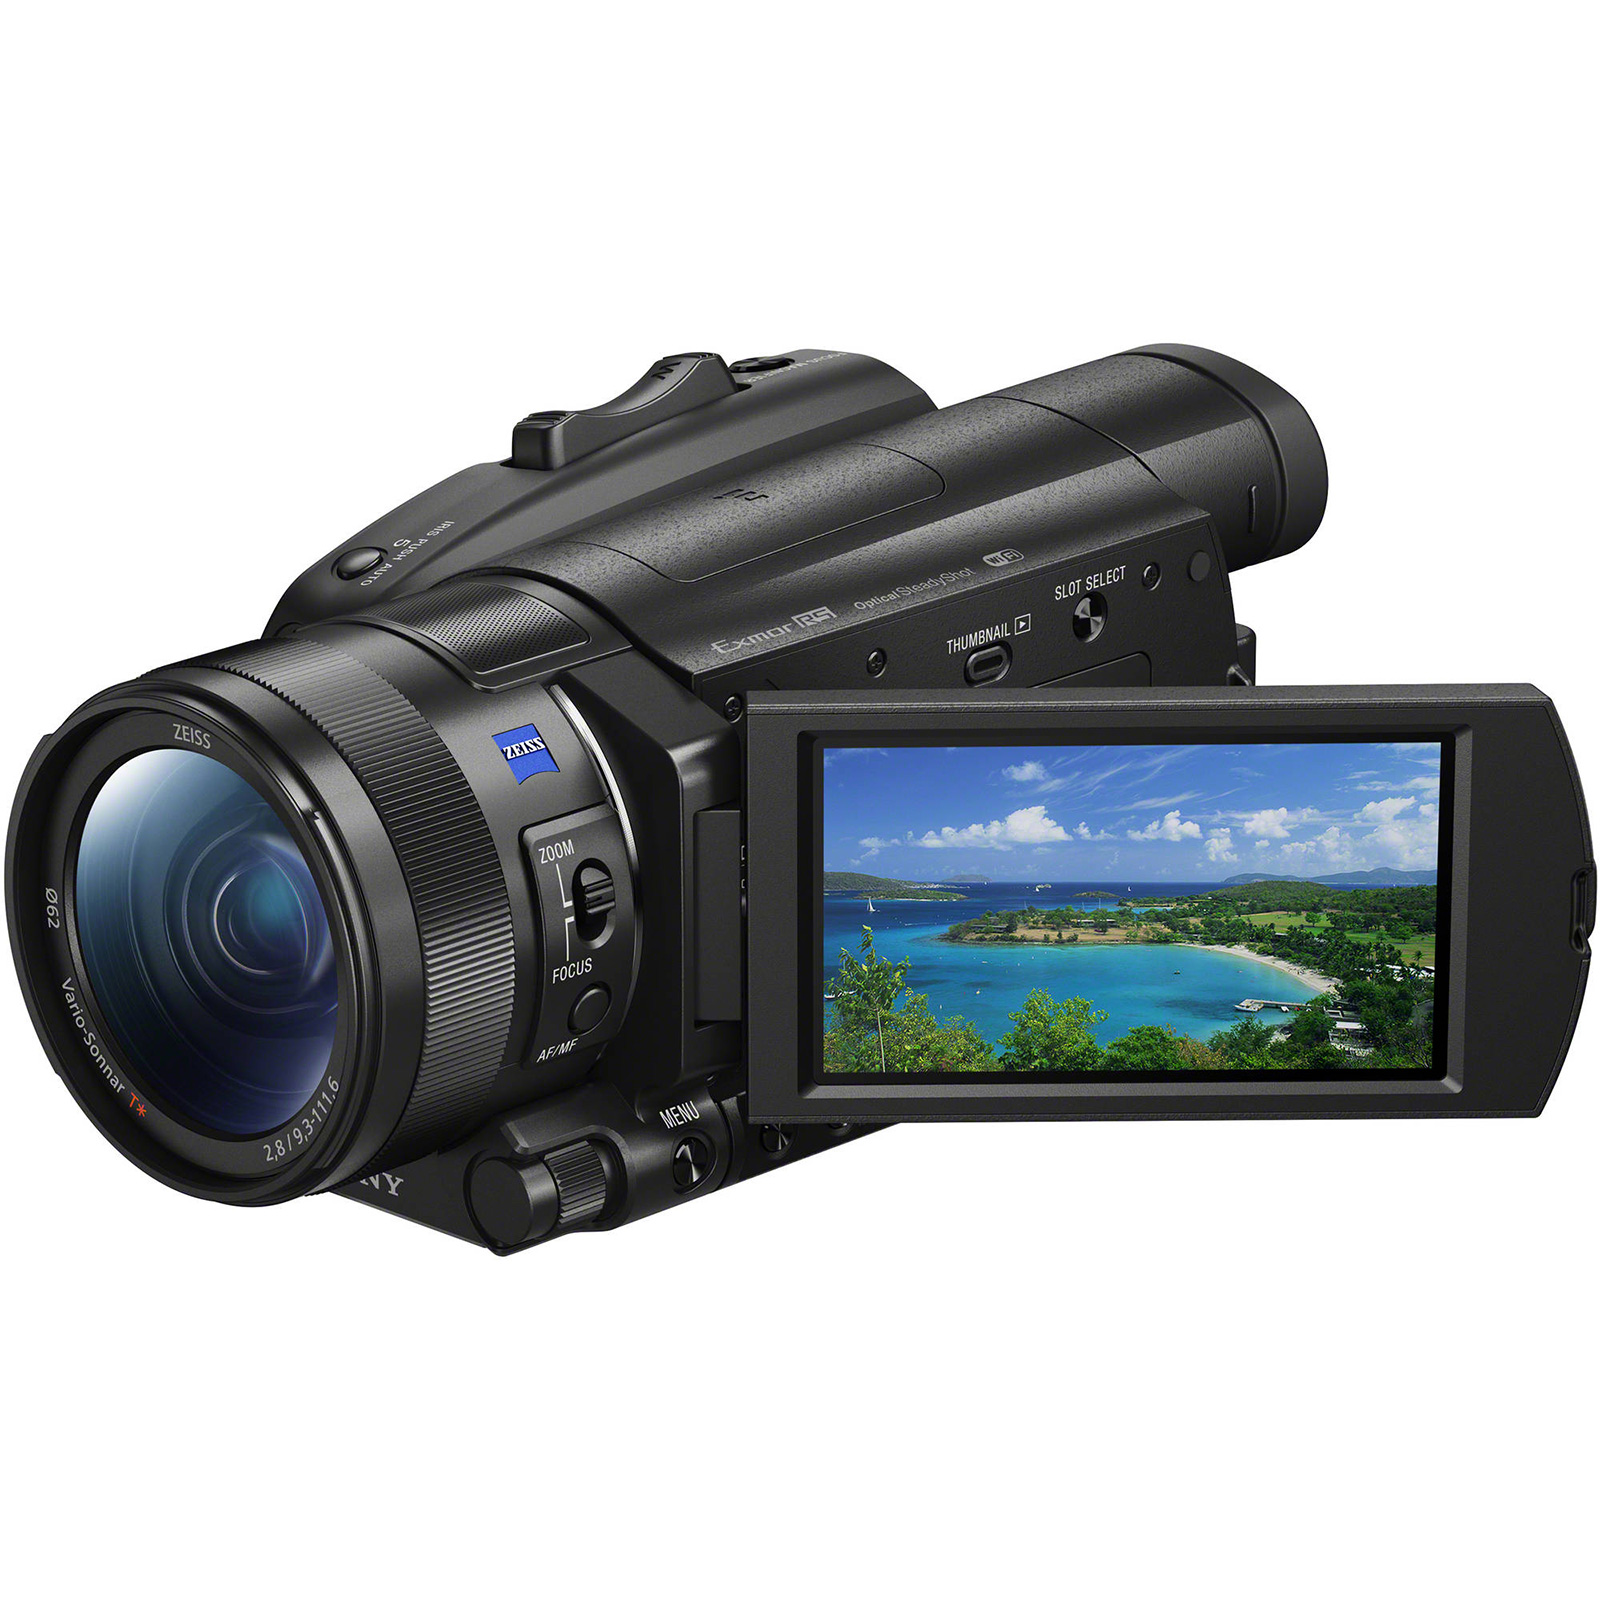 Sony Handycam FDR-AX700 4K HD Video Camera Camcorder